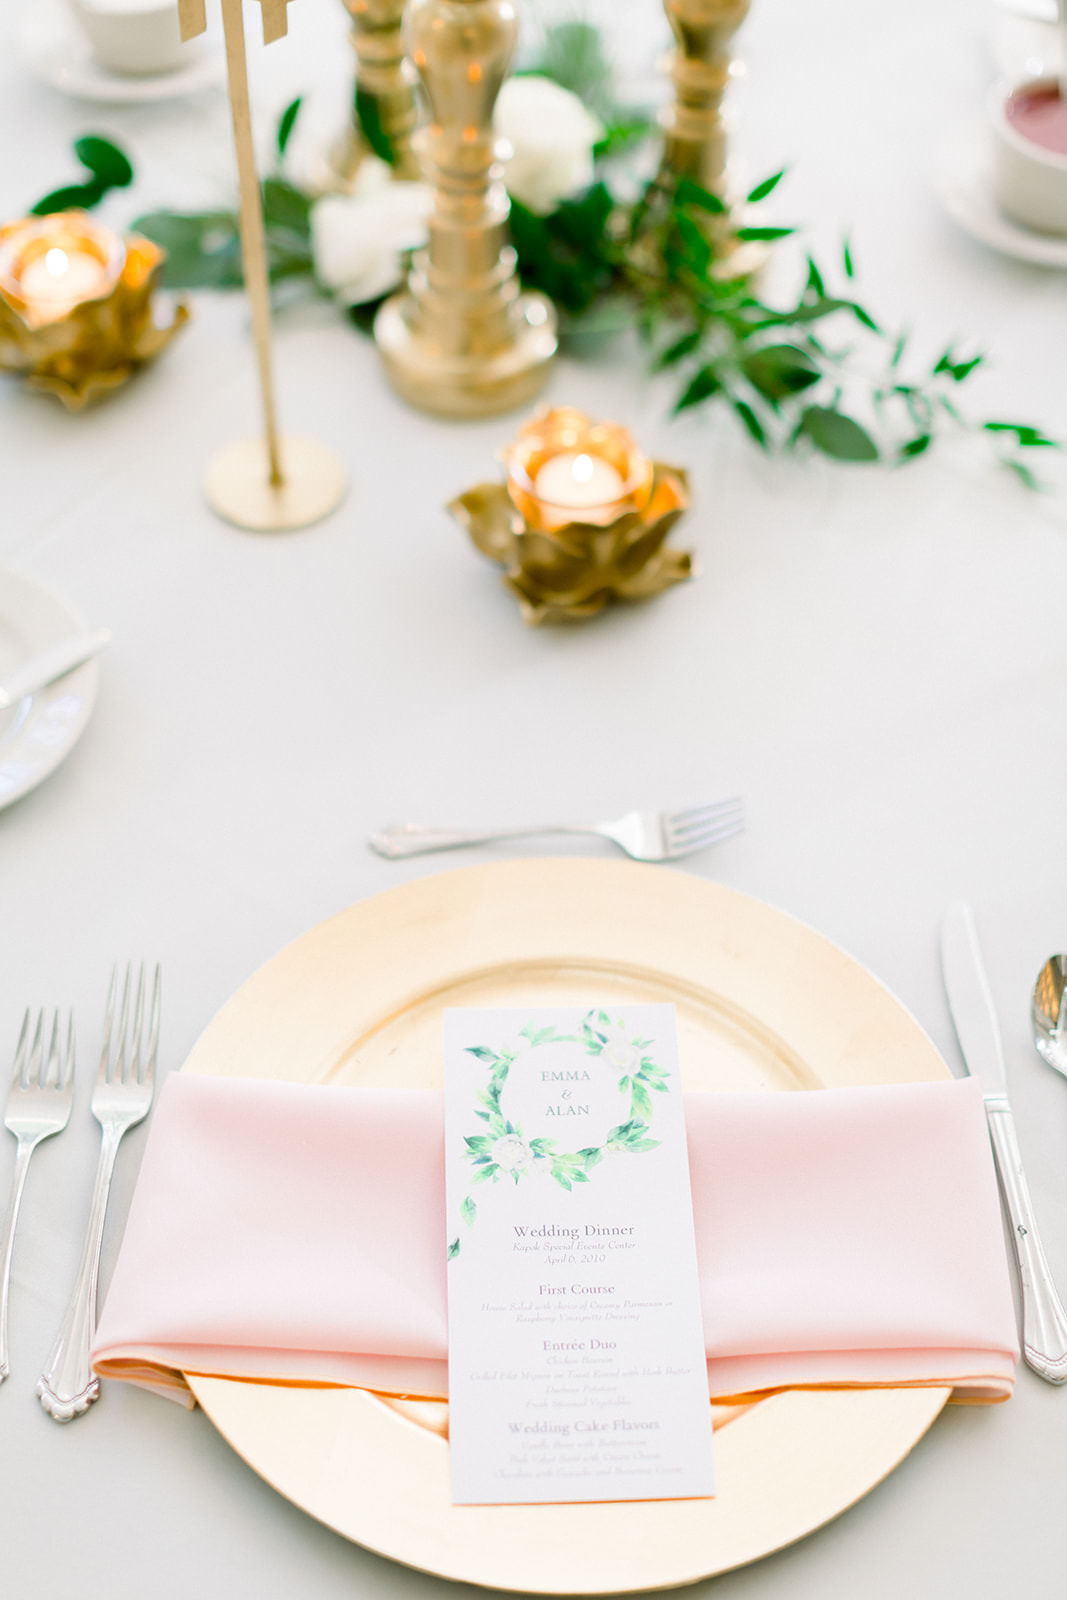 Classic, Elegant Wedding Reception Decor | Gold Charger Plates with Blush Pink Linens, Boho Inspired Floral Menu | Tampa Bay Wedding Photographers Shauna and Jordon Photography